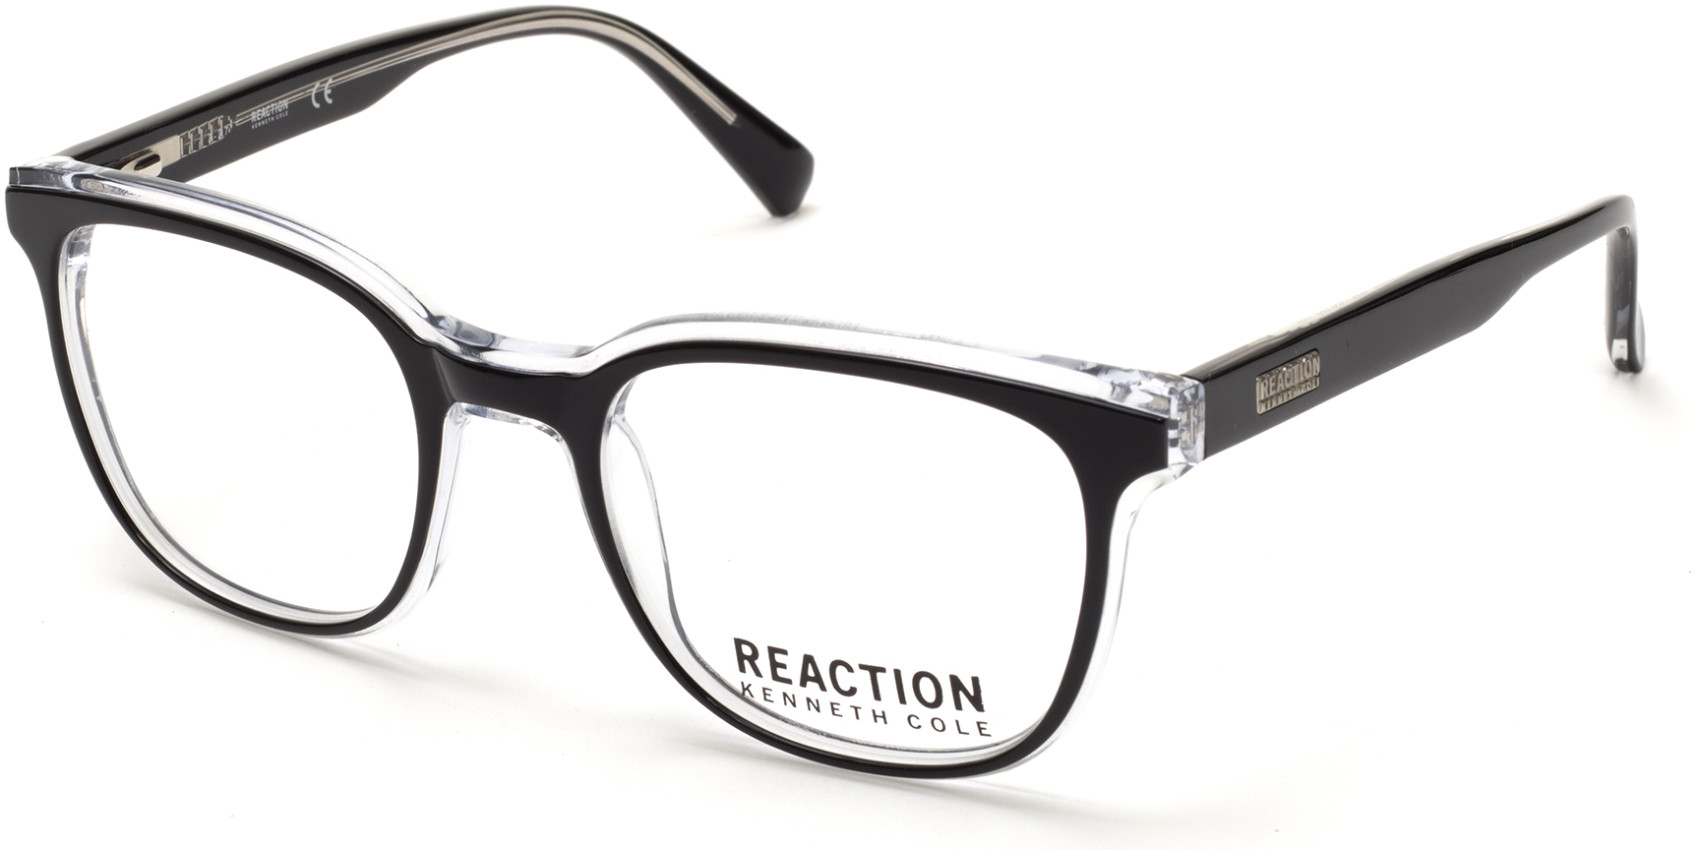 KENNETH COLE REACTION KC0800 33392 style-color 005 Black / Other